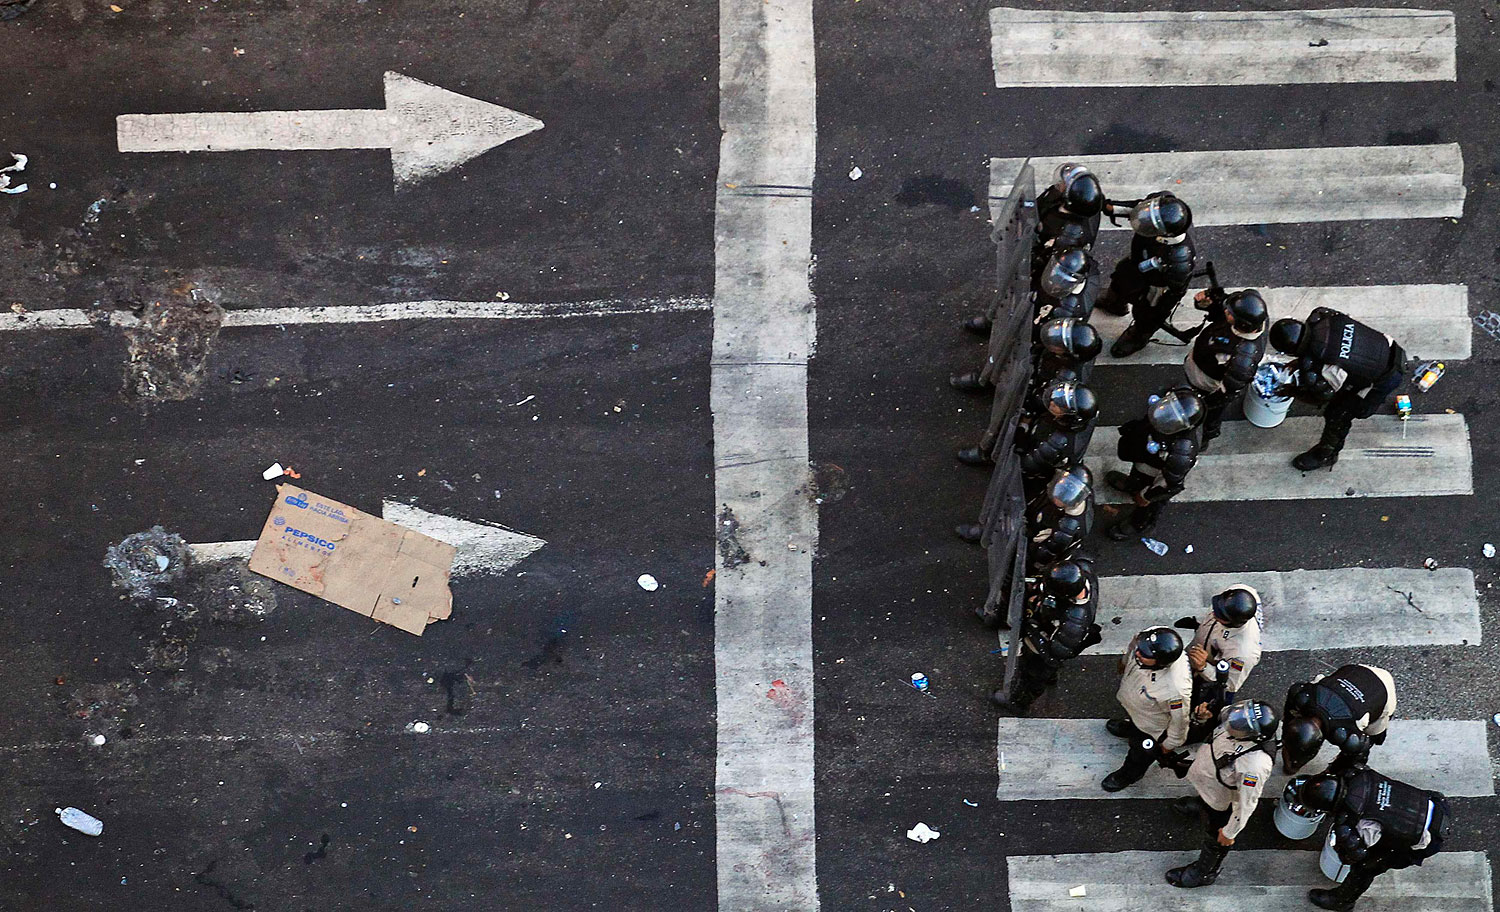 Riot police advance towards demonstrators during a protest against the government of President Nicolas Maduro in Caracas, Feb. 22, 2014.